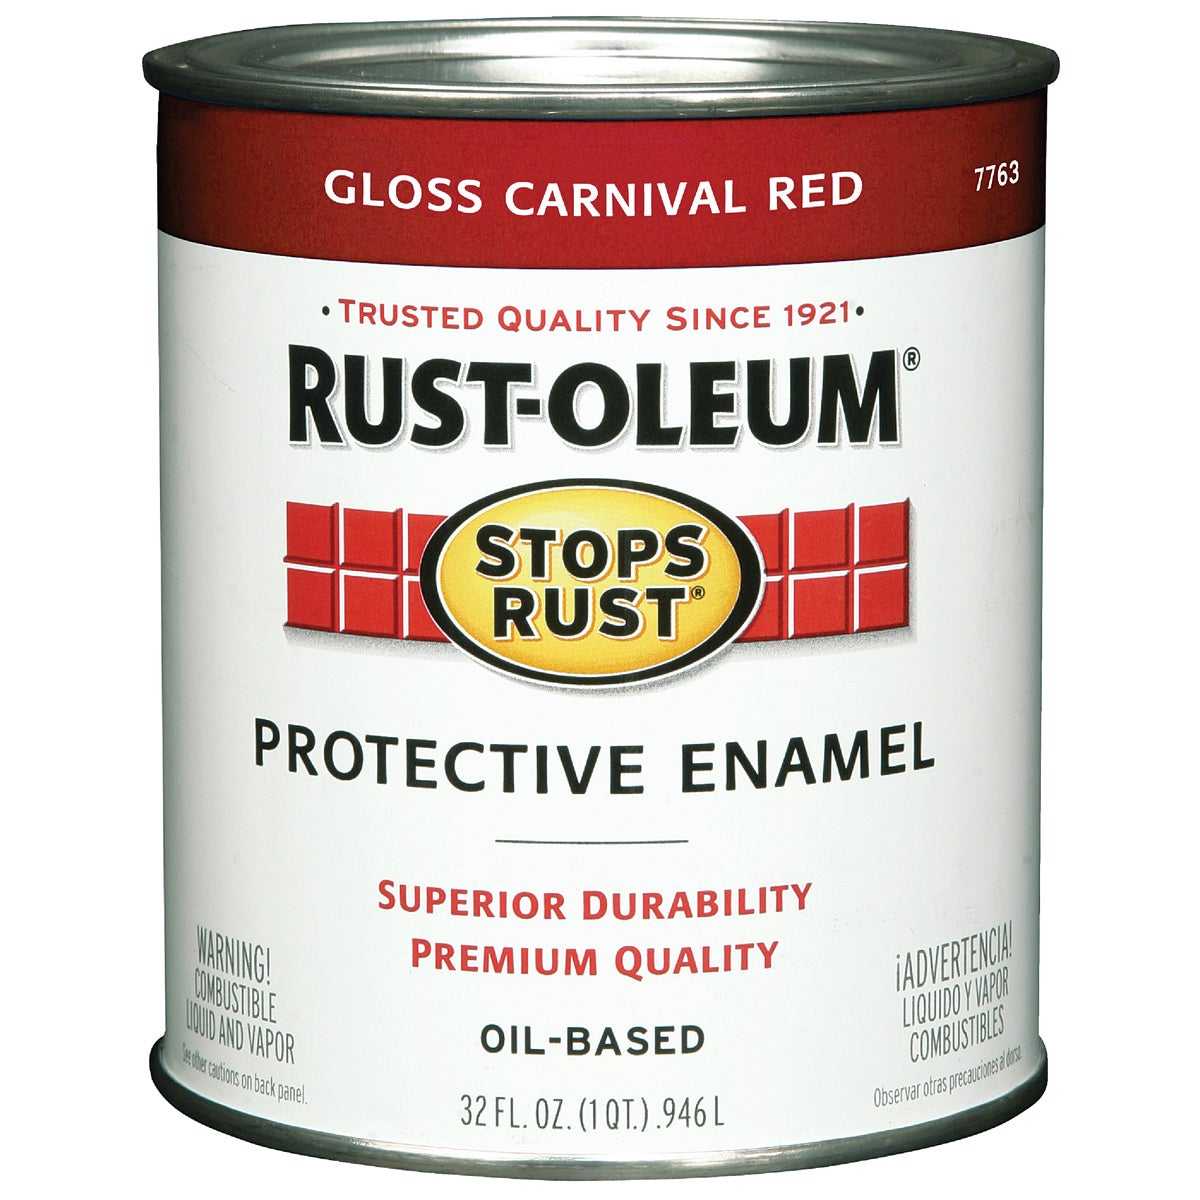 CARNIVAL RED ENAMEL - 7763-502 by Rustoleum